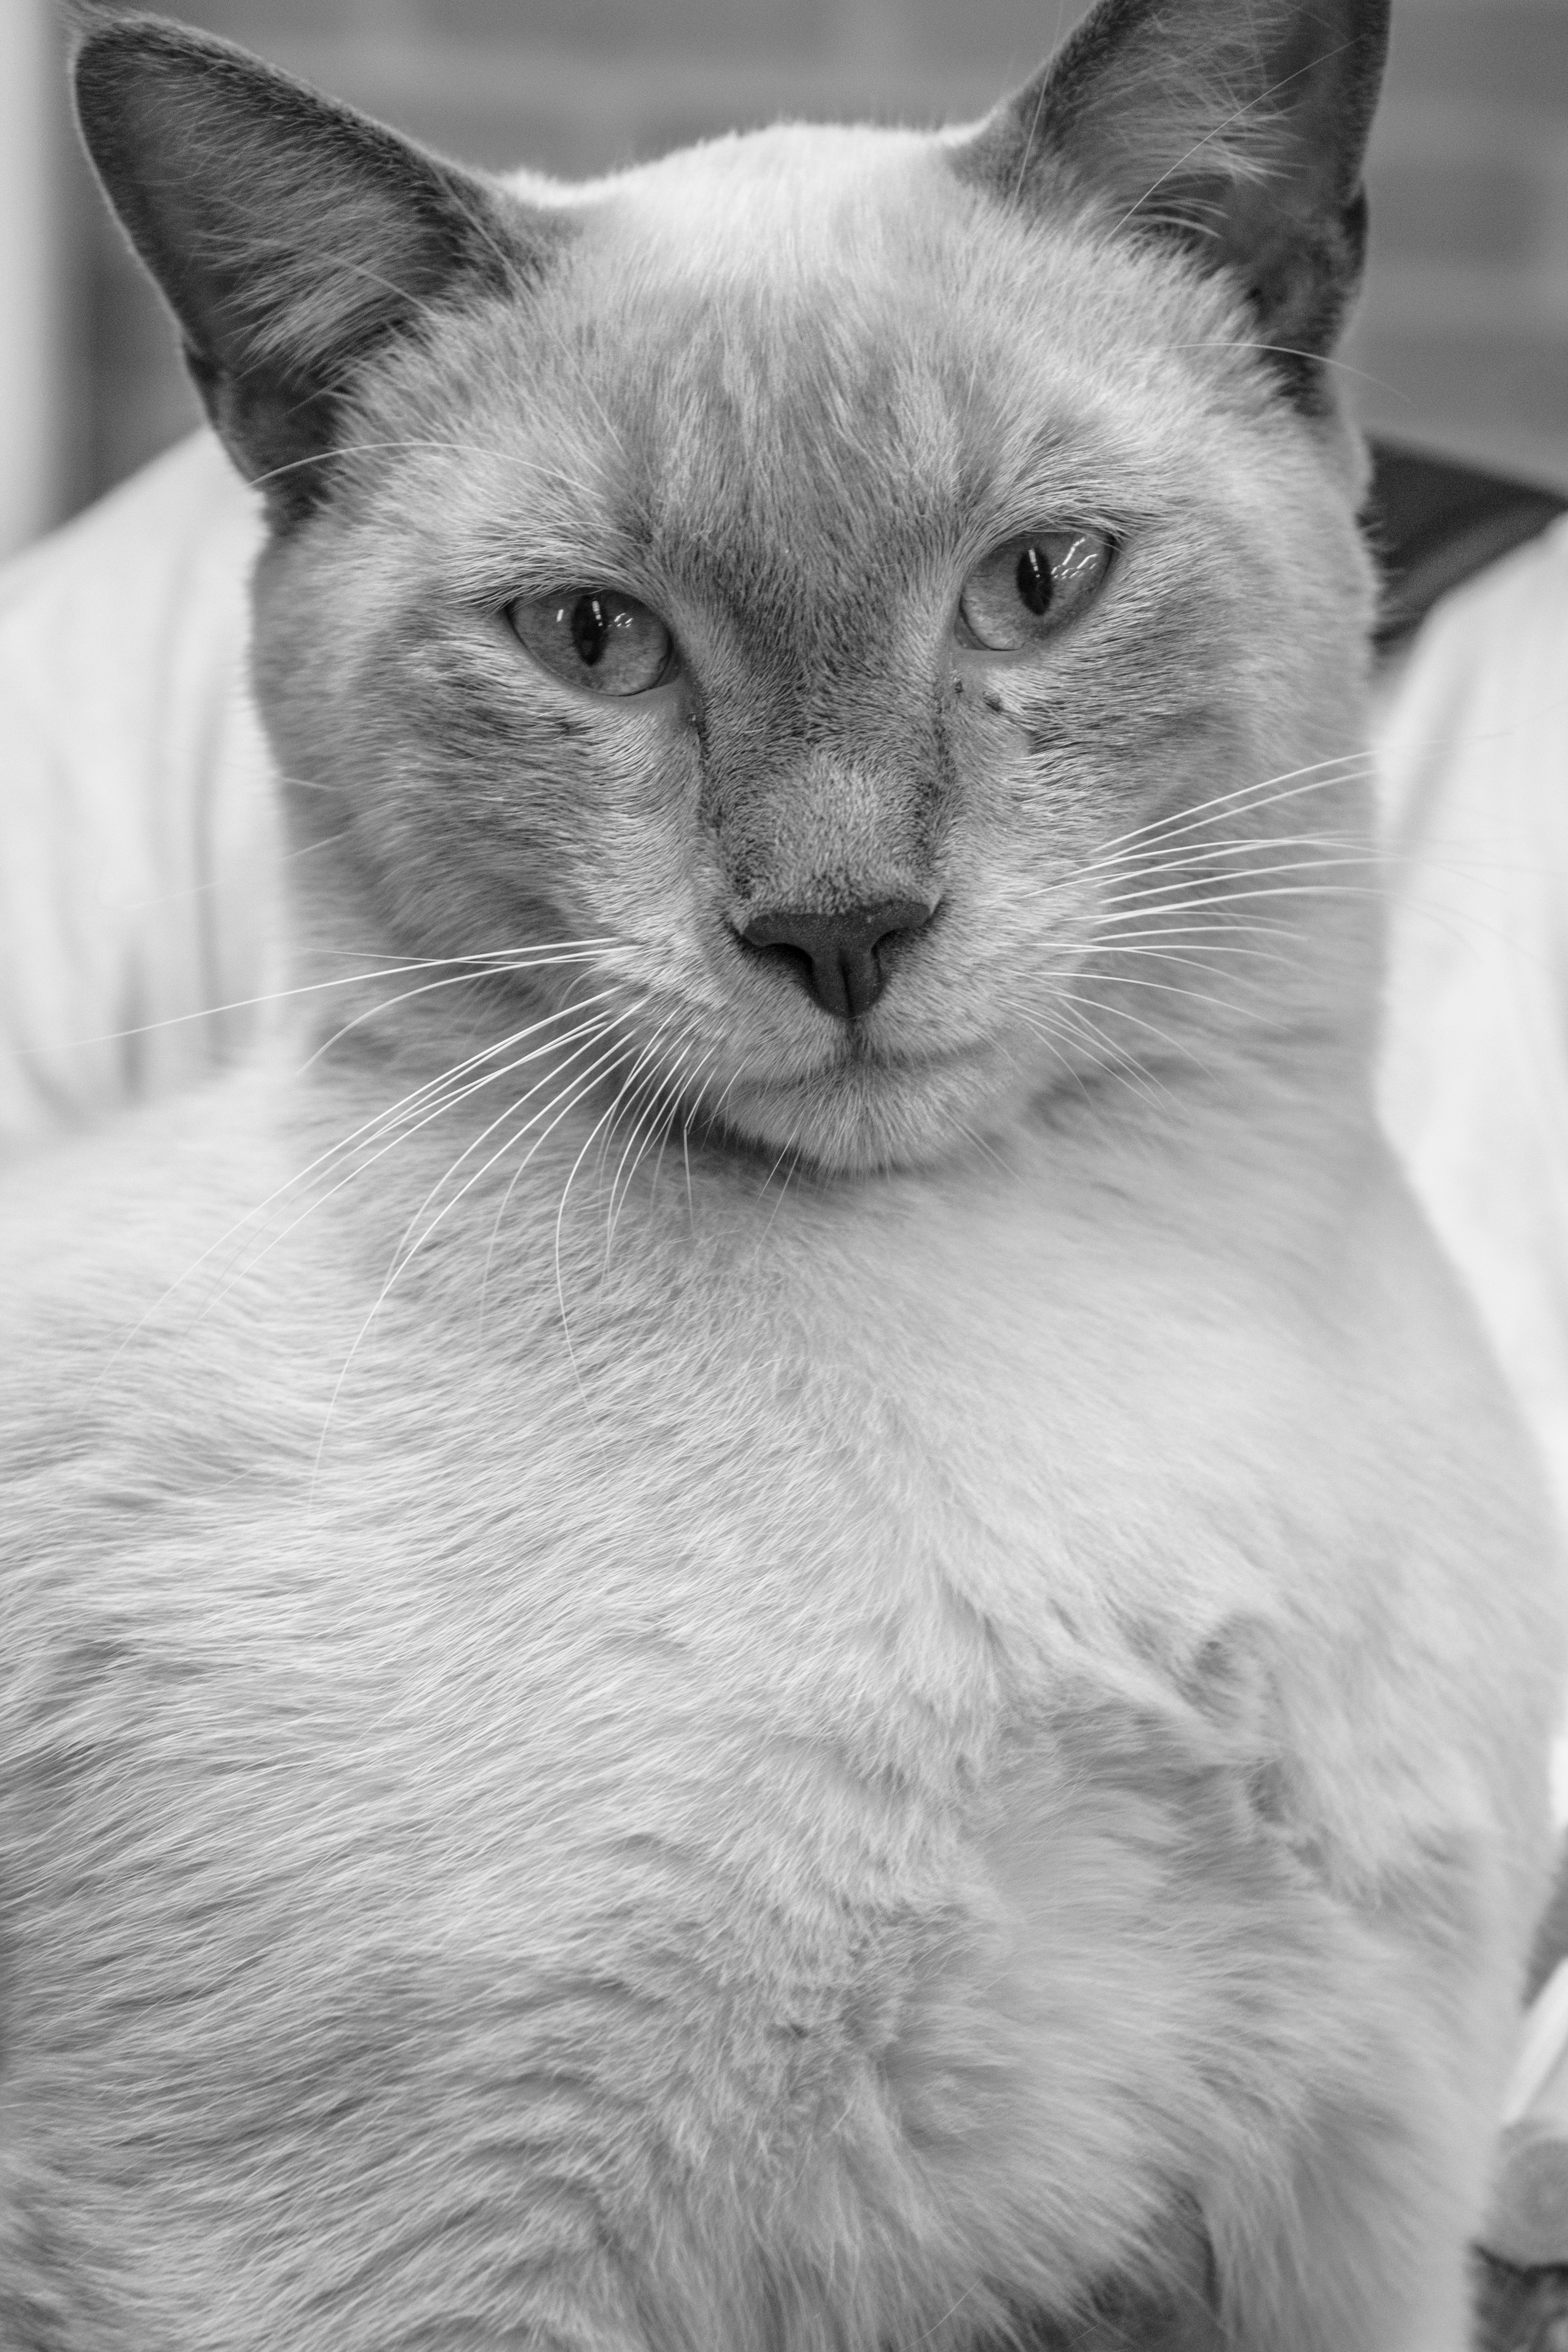 Greyscale Photo of Cat, Animal, Animal photography, Black-and-white, Cat, HQ Photo